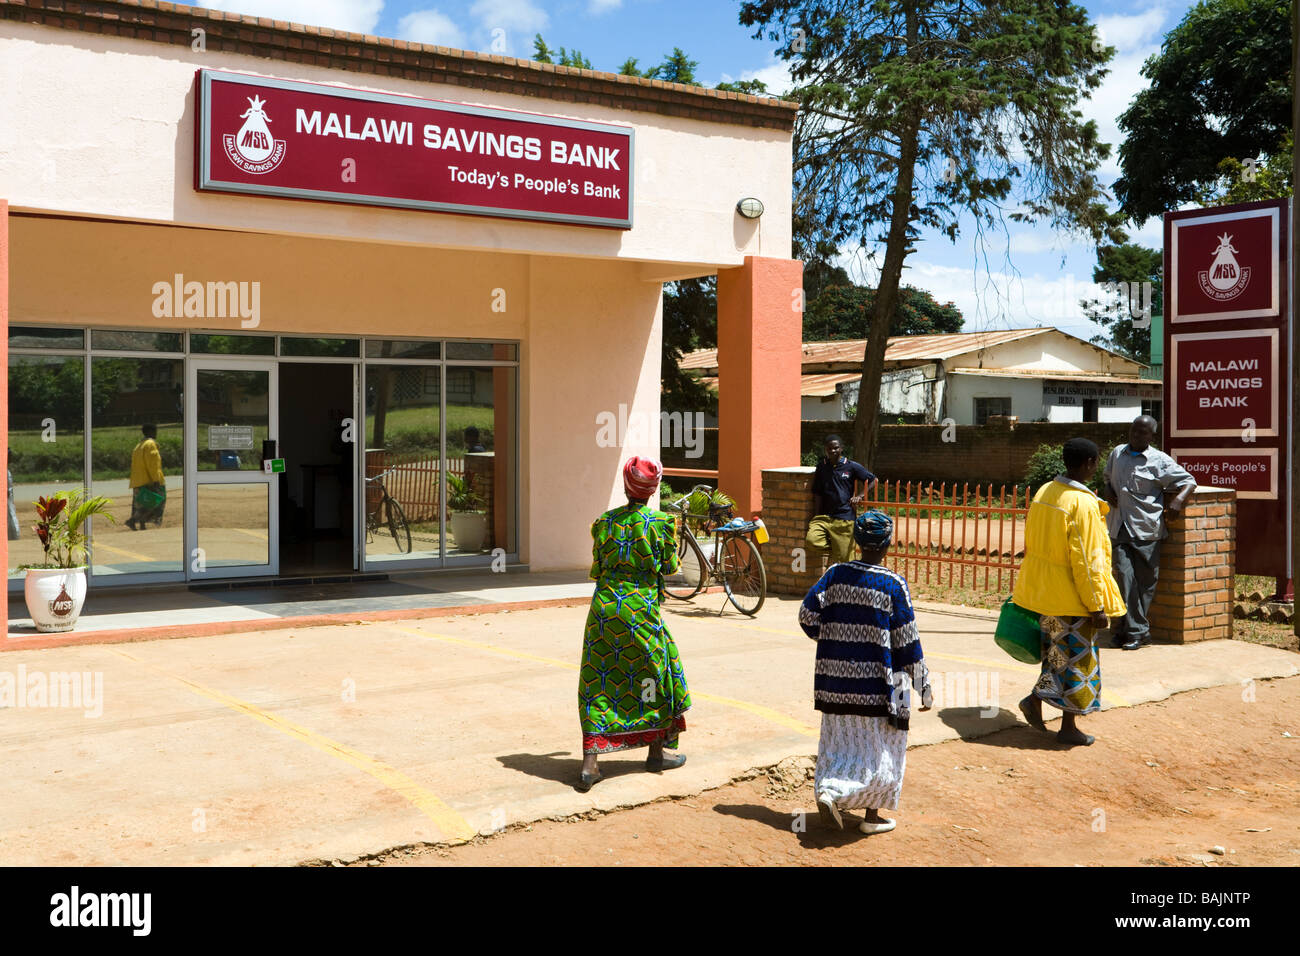 A branch of the Malawi Savings Bank at Dedza, Malawi, Africa - Stock Image